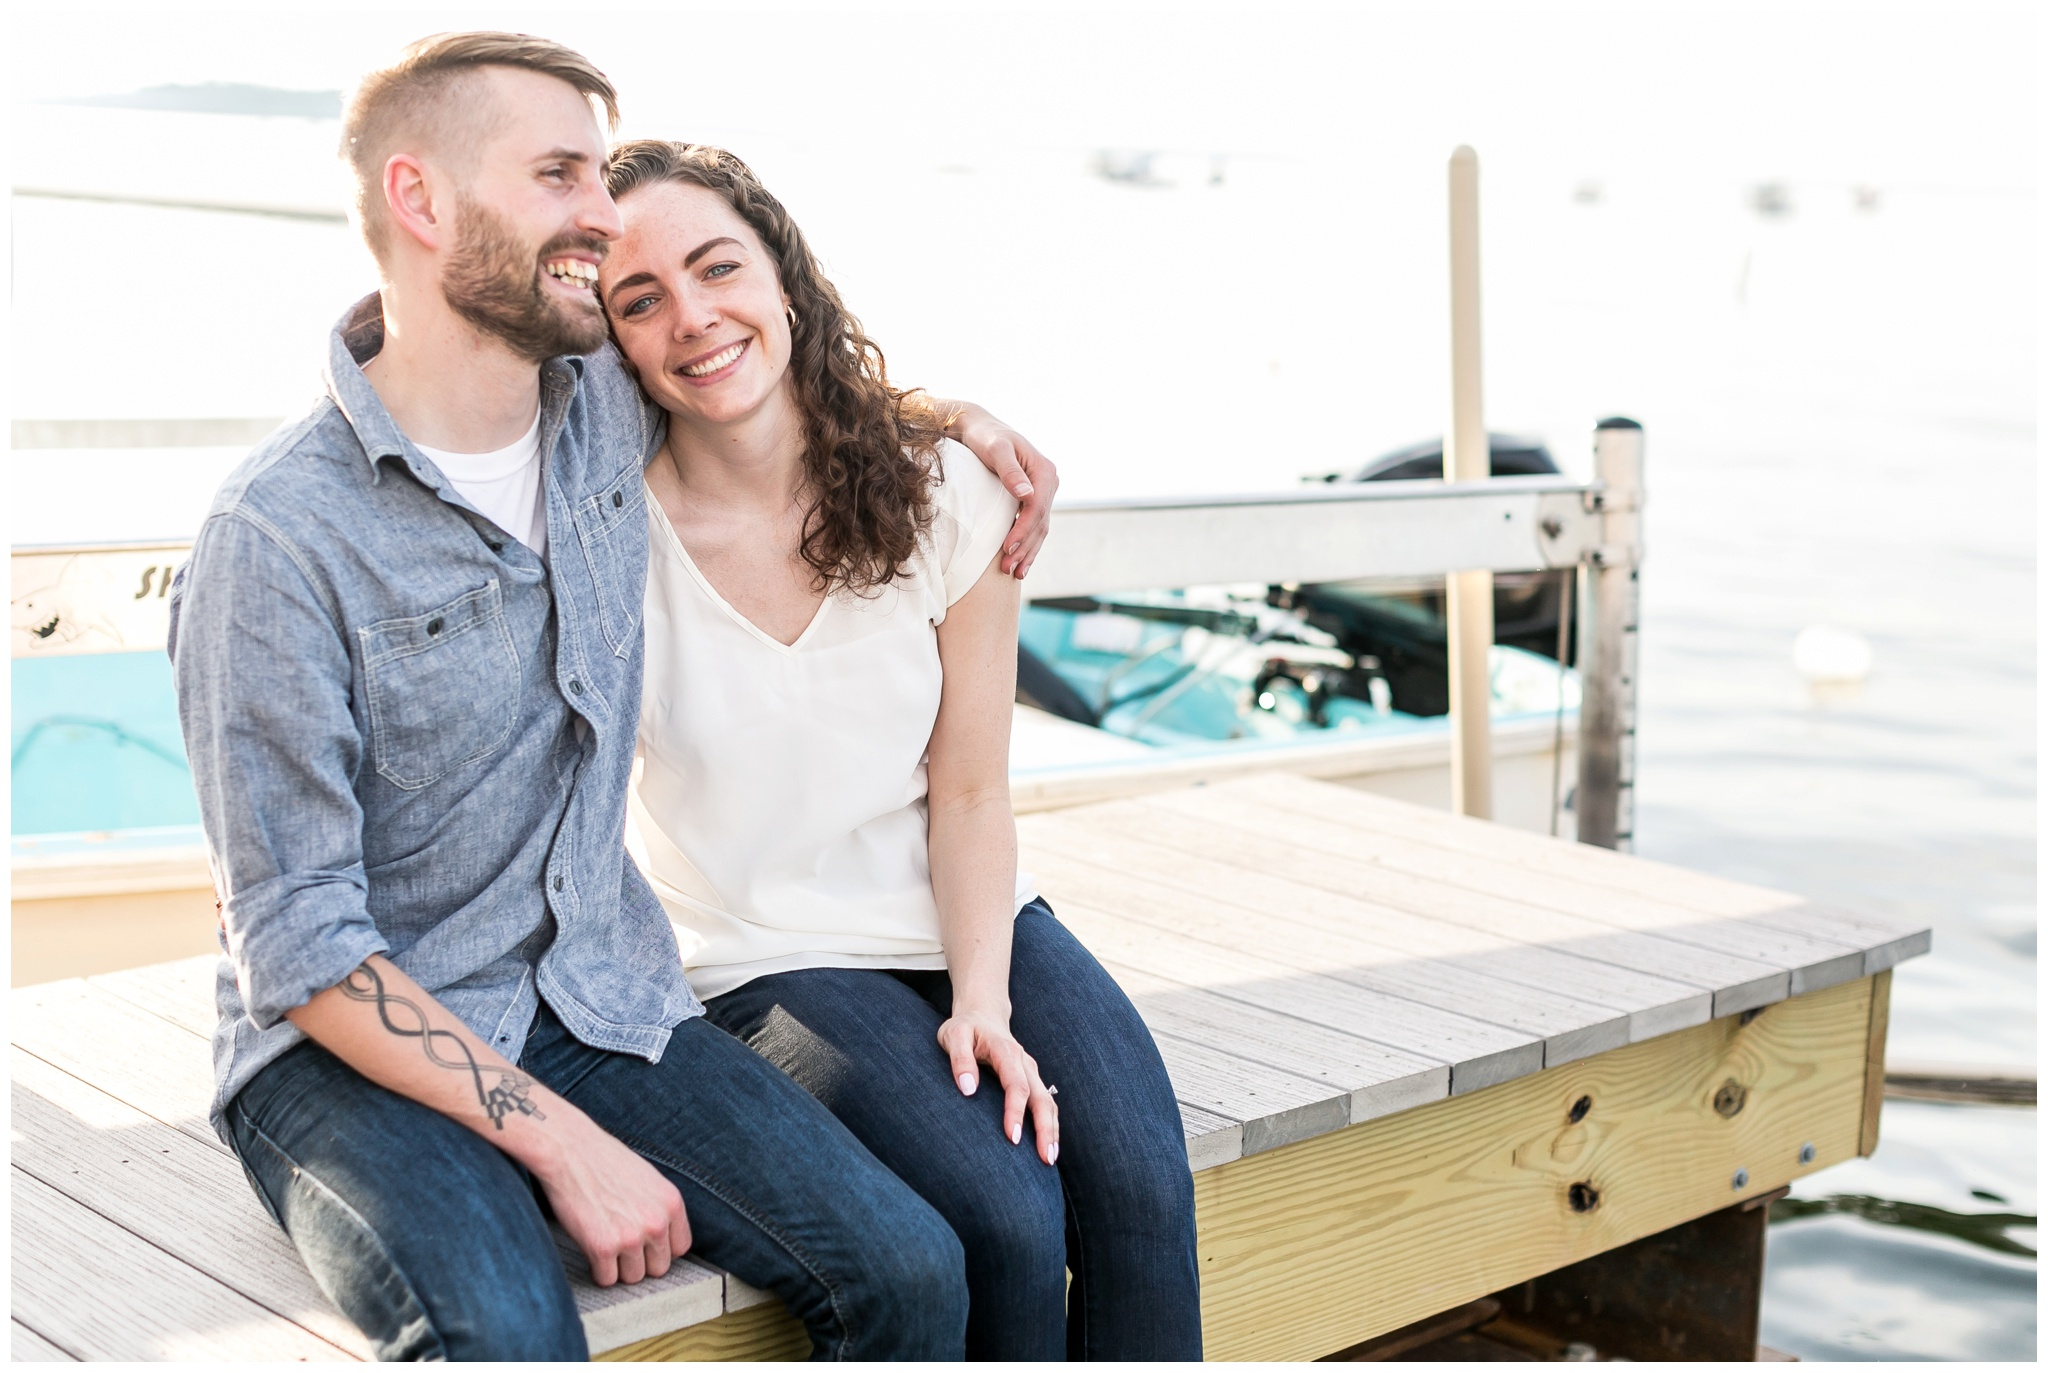 memorial_union_engagement_session_madison_wisconsin_photographers_3798.jpg